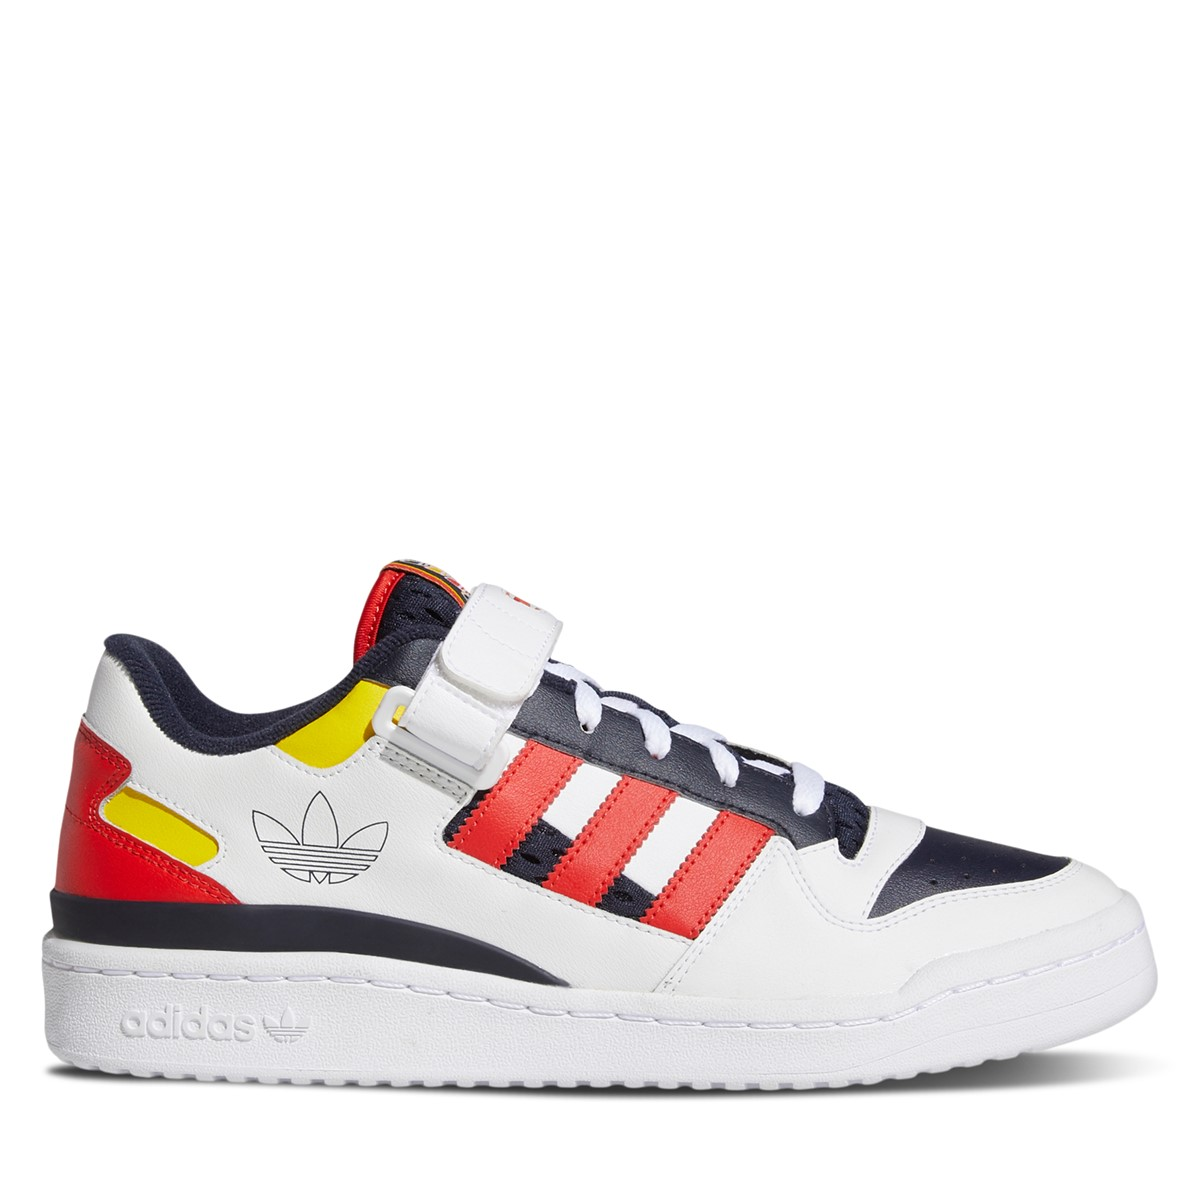 Men's Forum Low Sneakers in White/Yellow/Red/Black